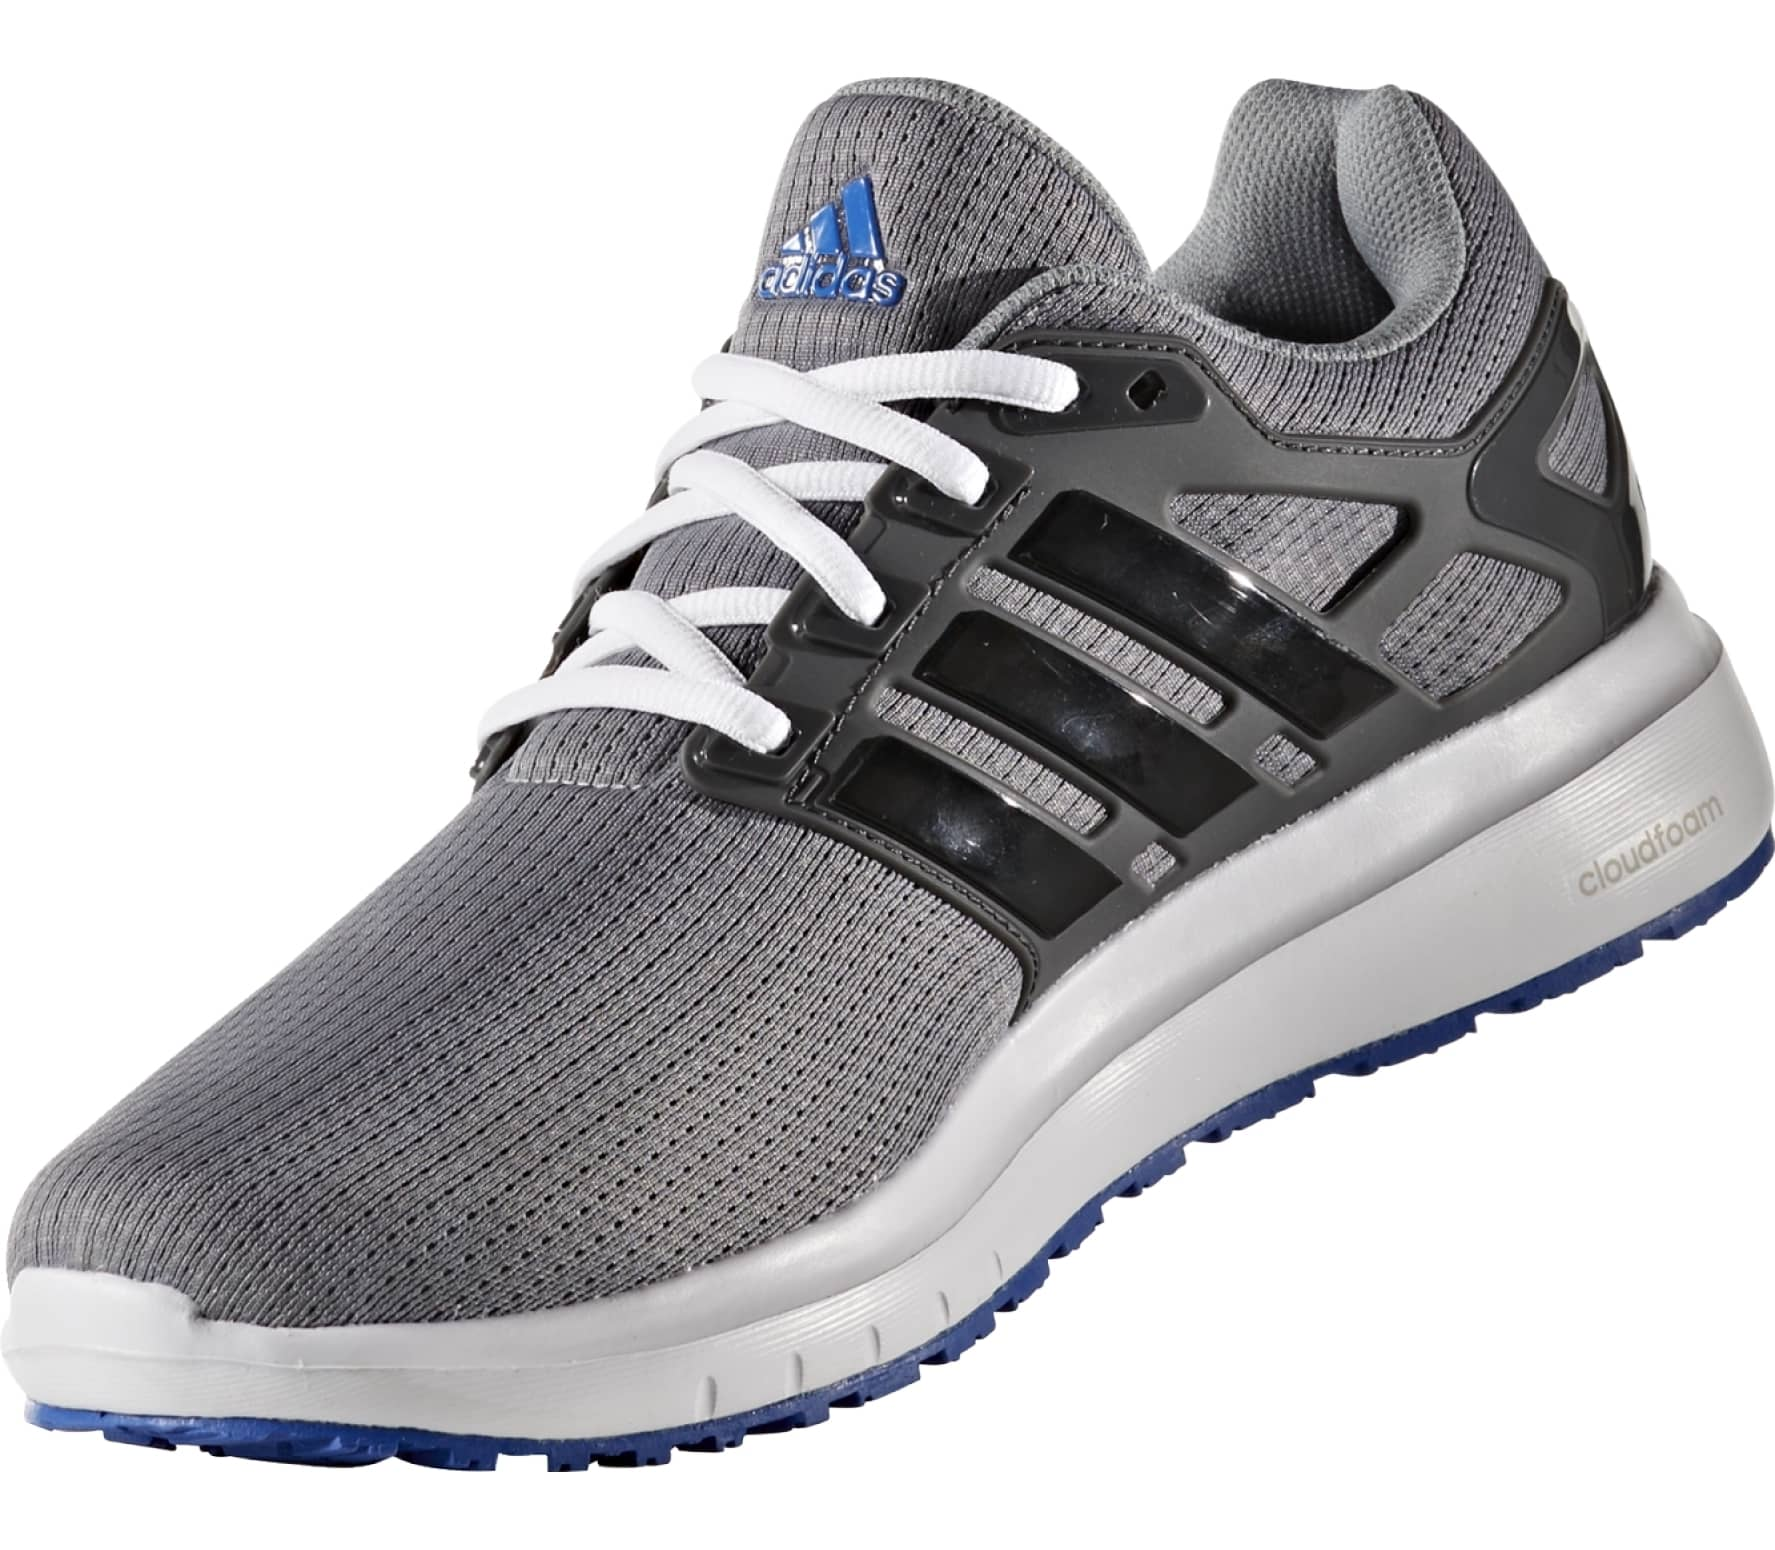 check out ba4c0 7f256 Adidas - Energy Cloud WTC scarpe running da uomo (grigionero)